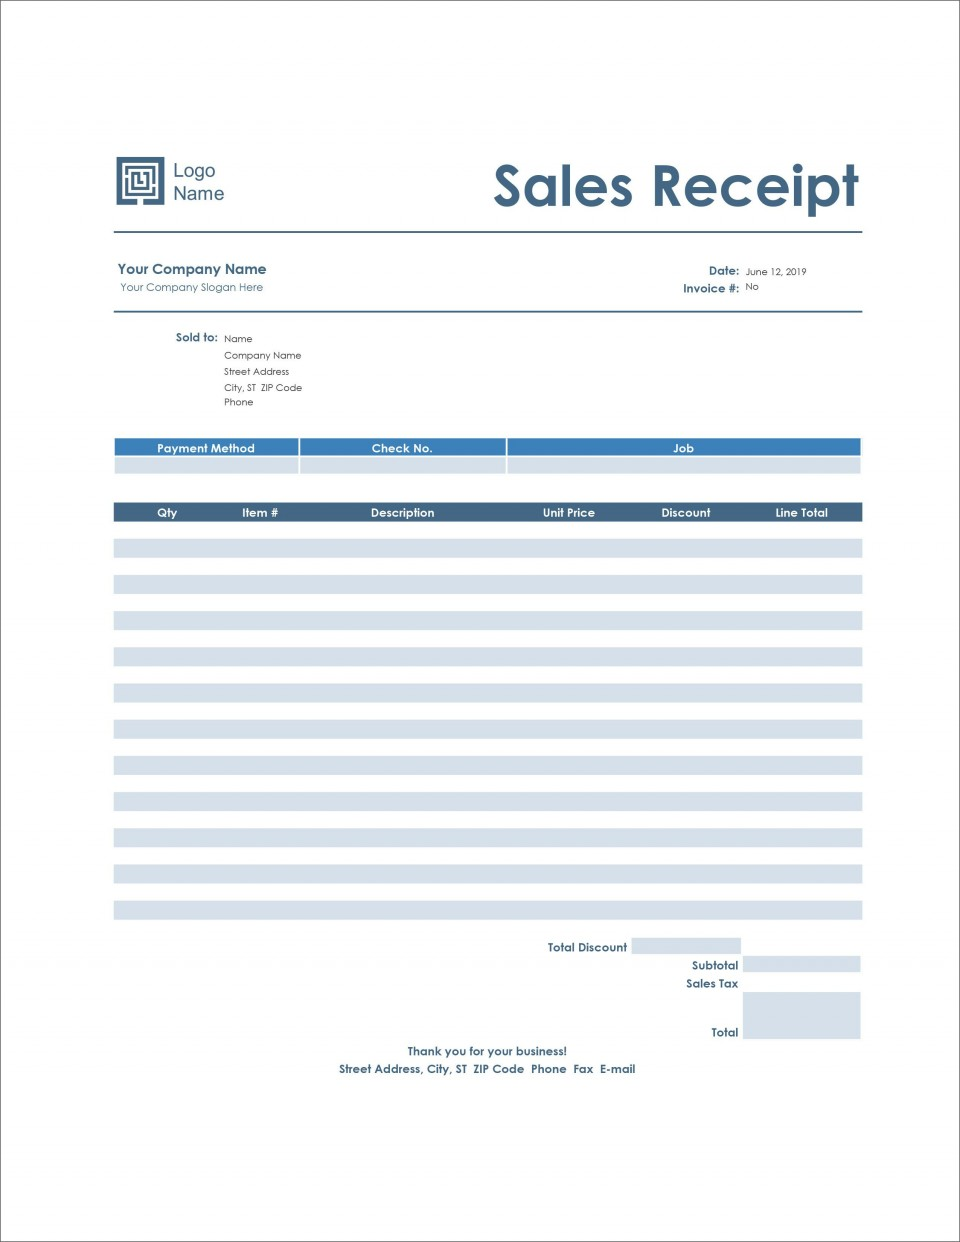 006 Staggering Receipt Template Microsoft Word Design  Payment Sample Invoice960